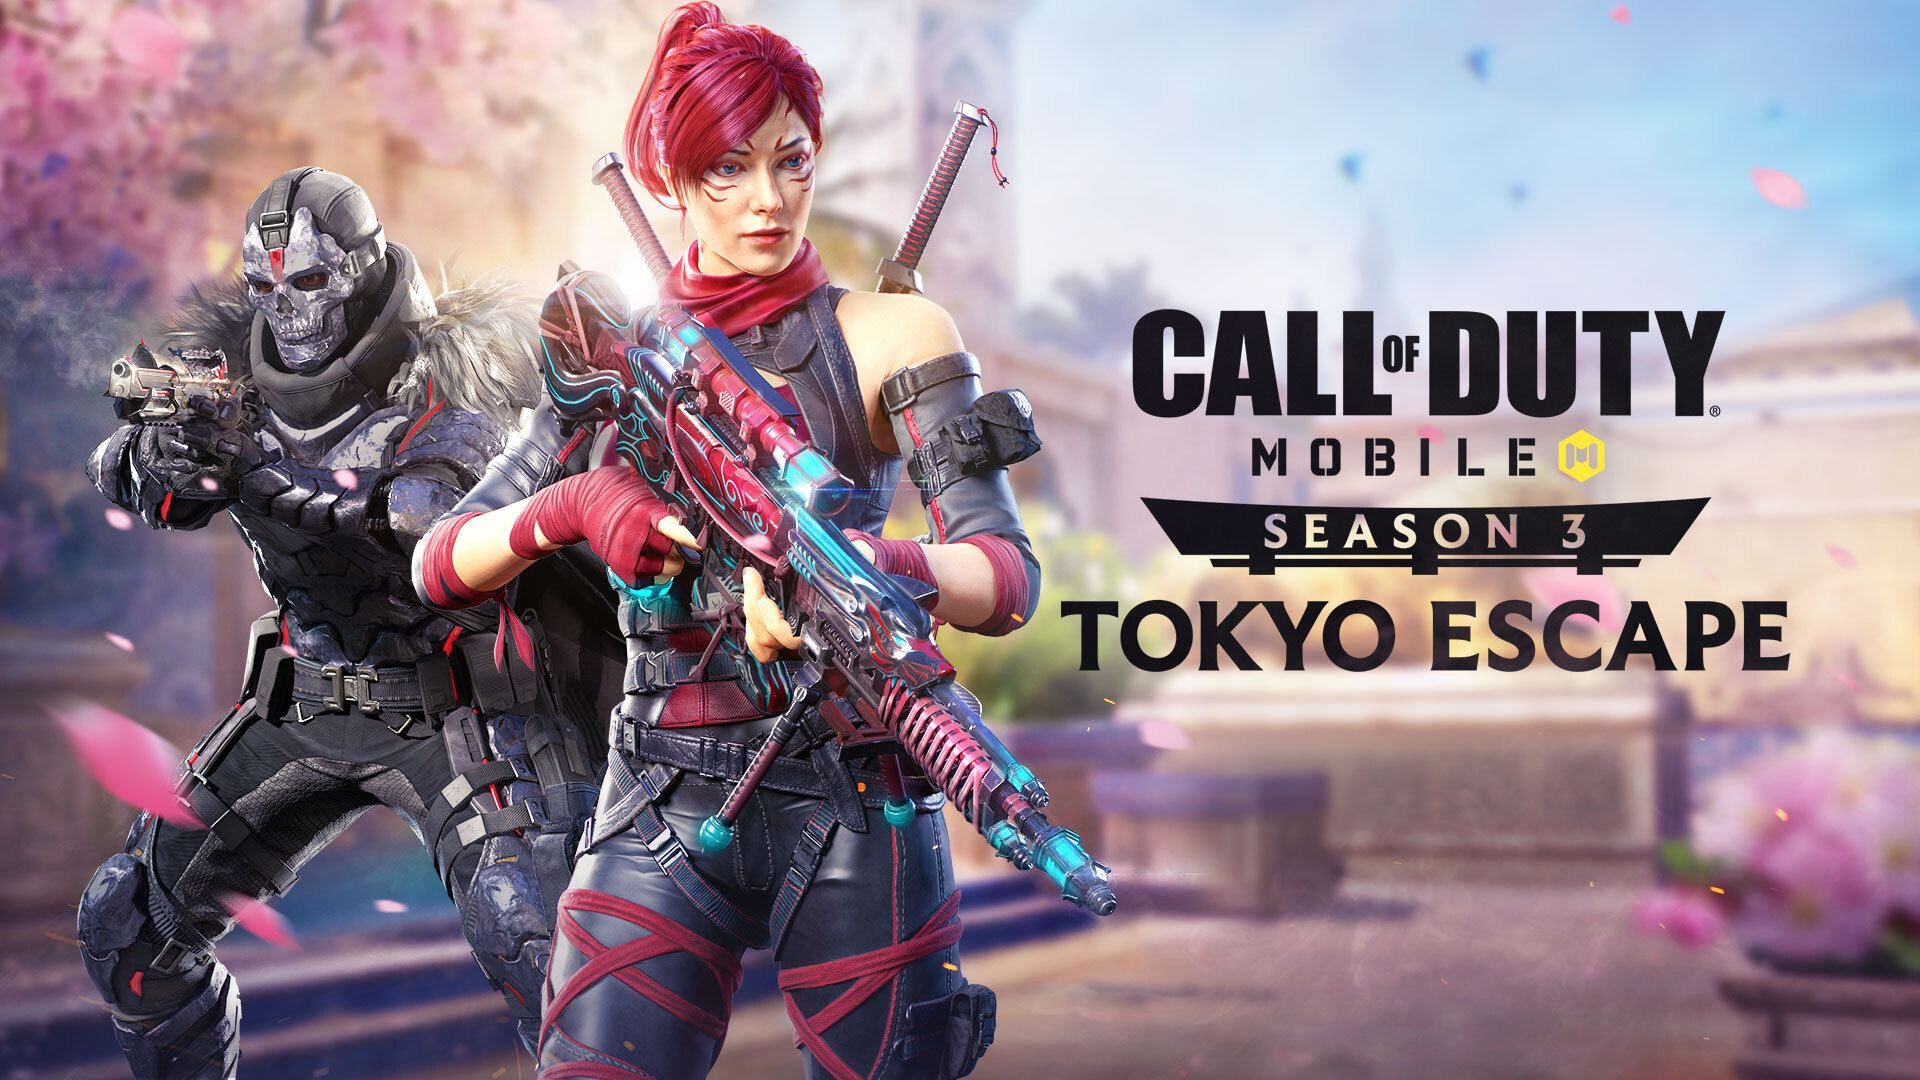 Call of Duty Mobile Season 3 takes us to Japan with new Tokyo Escape Chapter